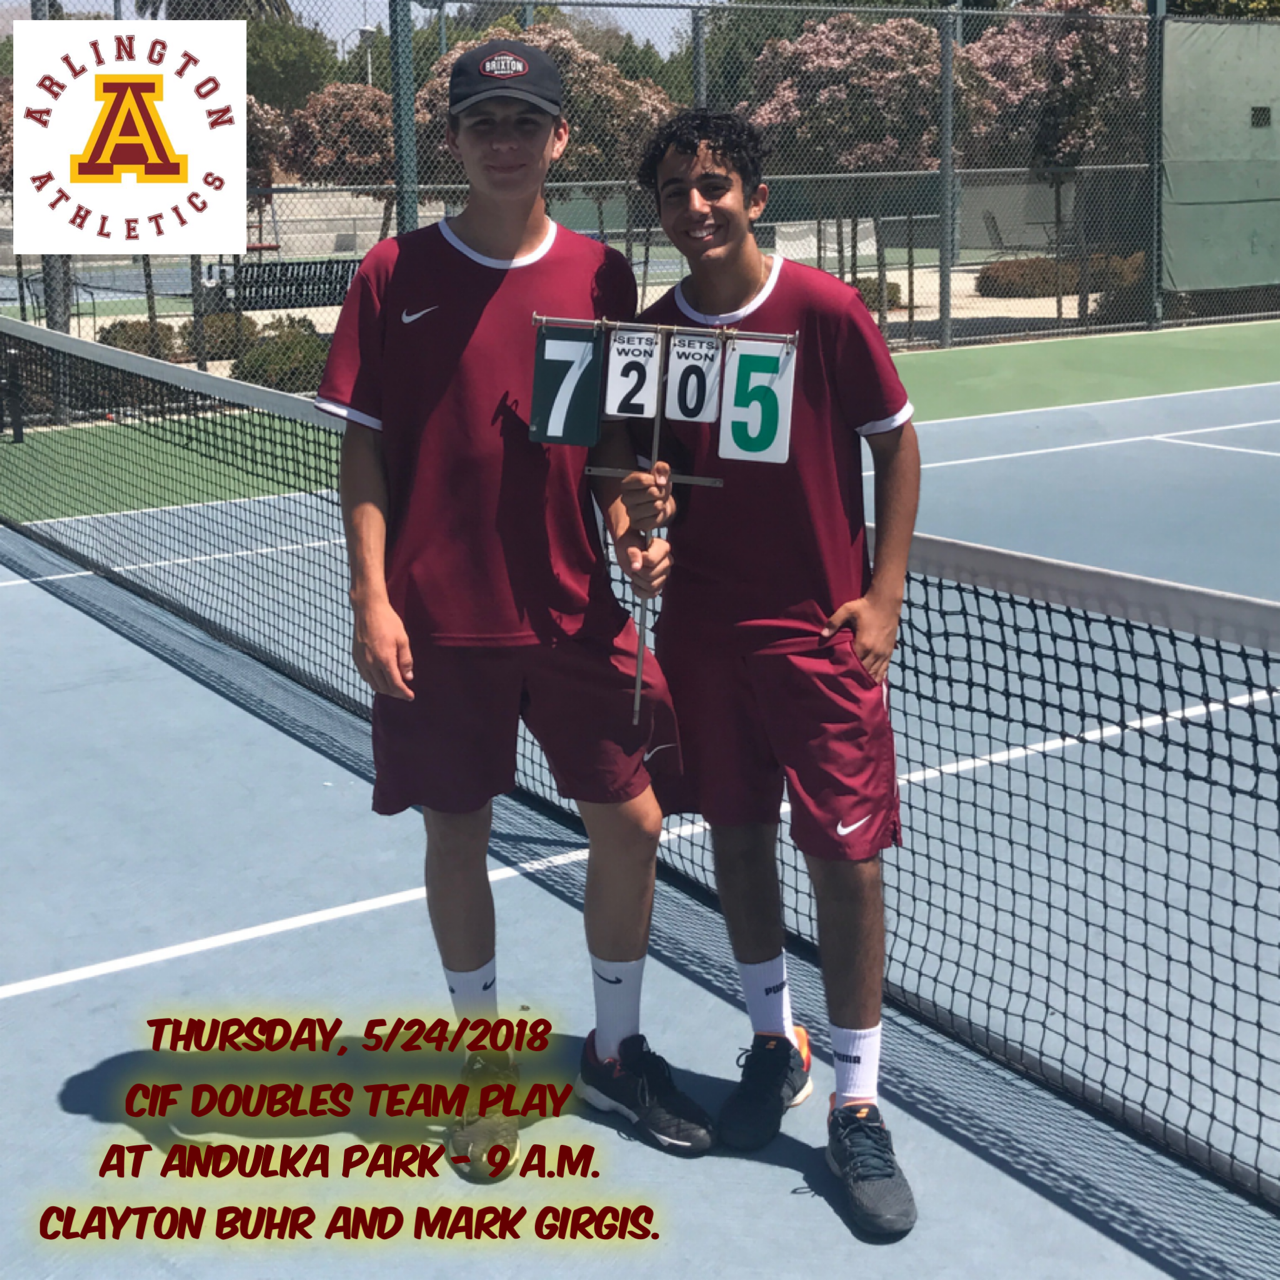 CiF Doubles Team Playoffs: Arlington at Andulka Park on Thursday, 5/24 at 9 a.m.